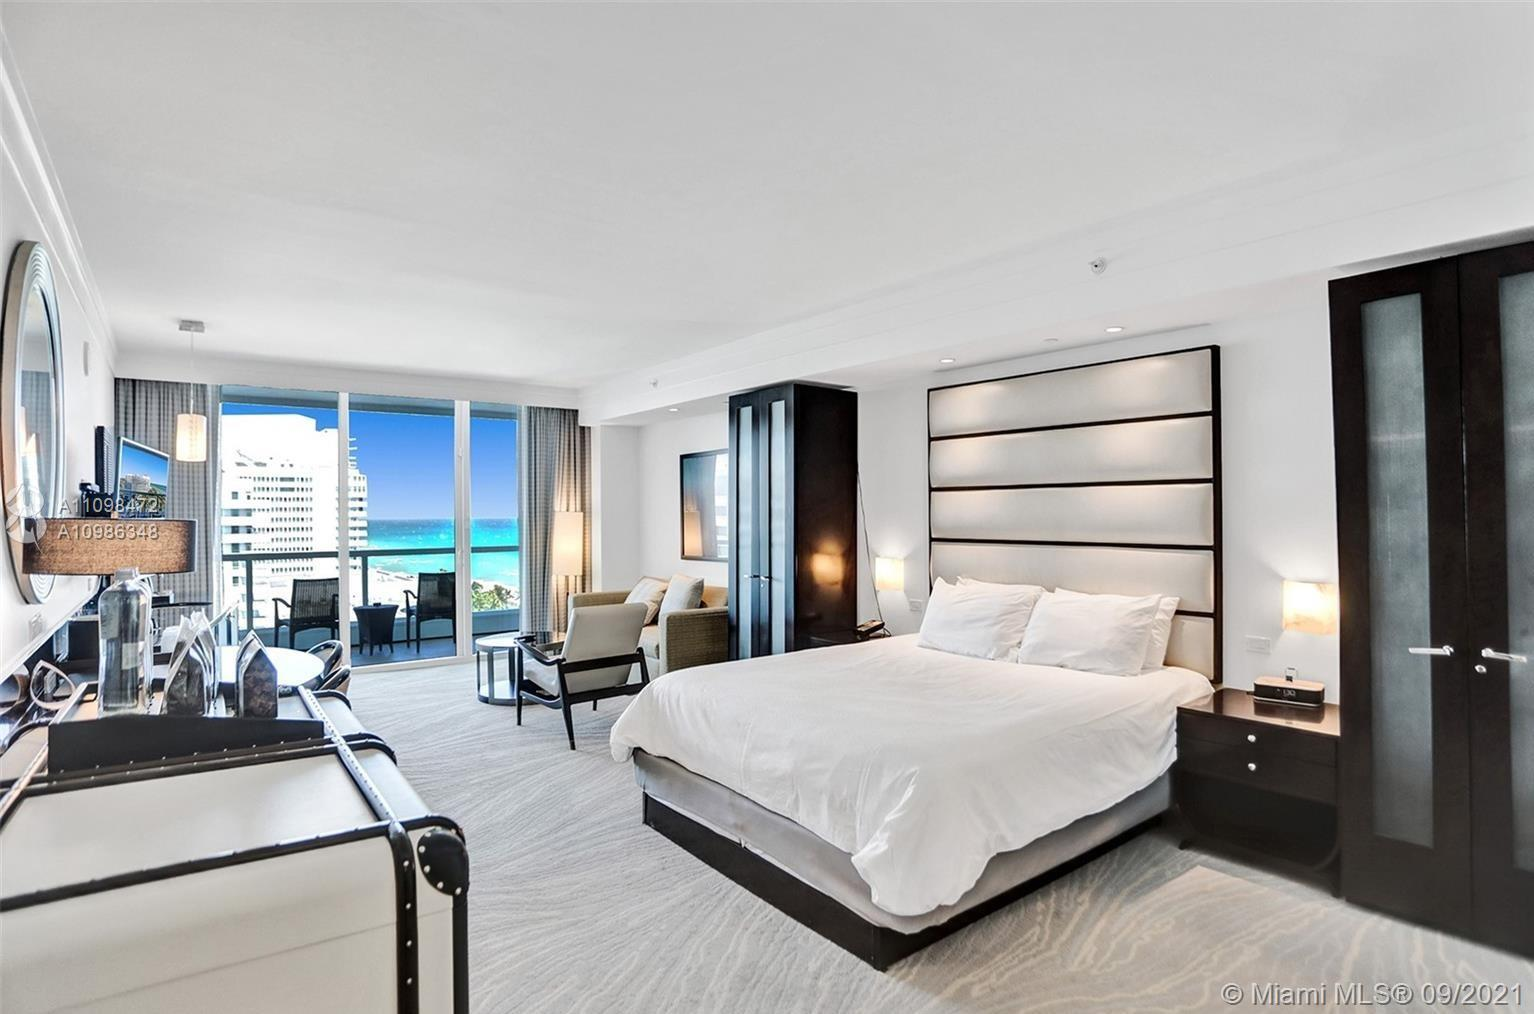 STUDIO OVERLOOKING TO THE OCEN AND POOL FROM 14 FLOOR. VACATION STYLE LIVING- KING SIZE BED, SOFA-BE